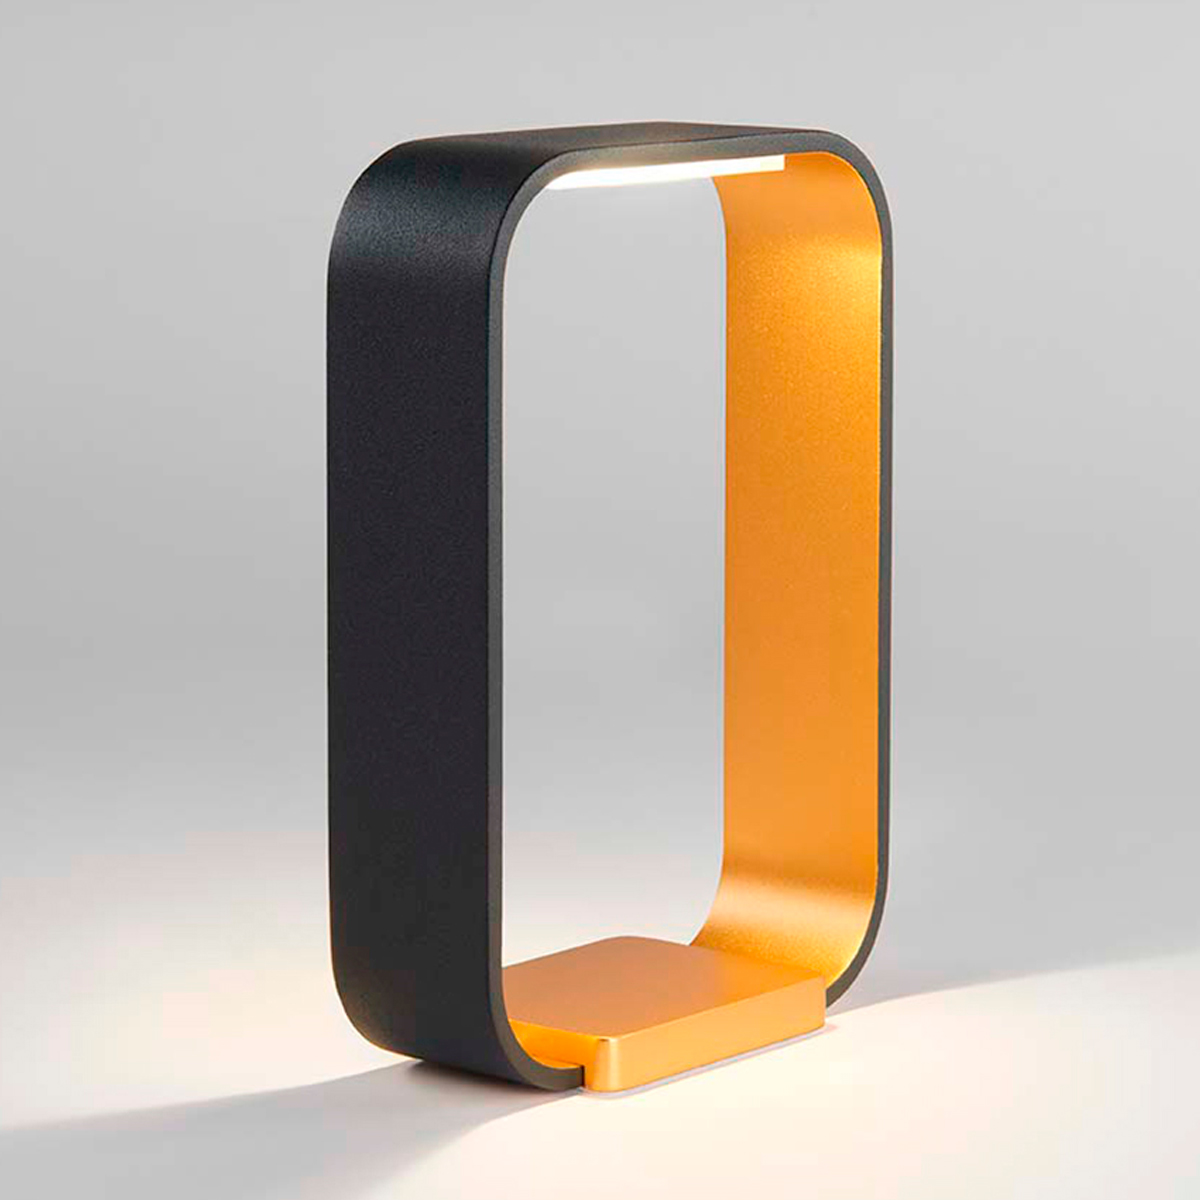 CODE TOUCH BORDLAMPE SORT/GULD